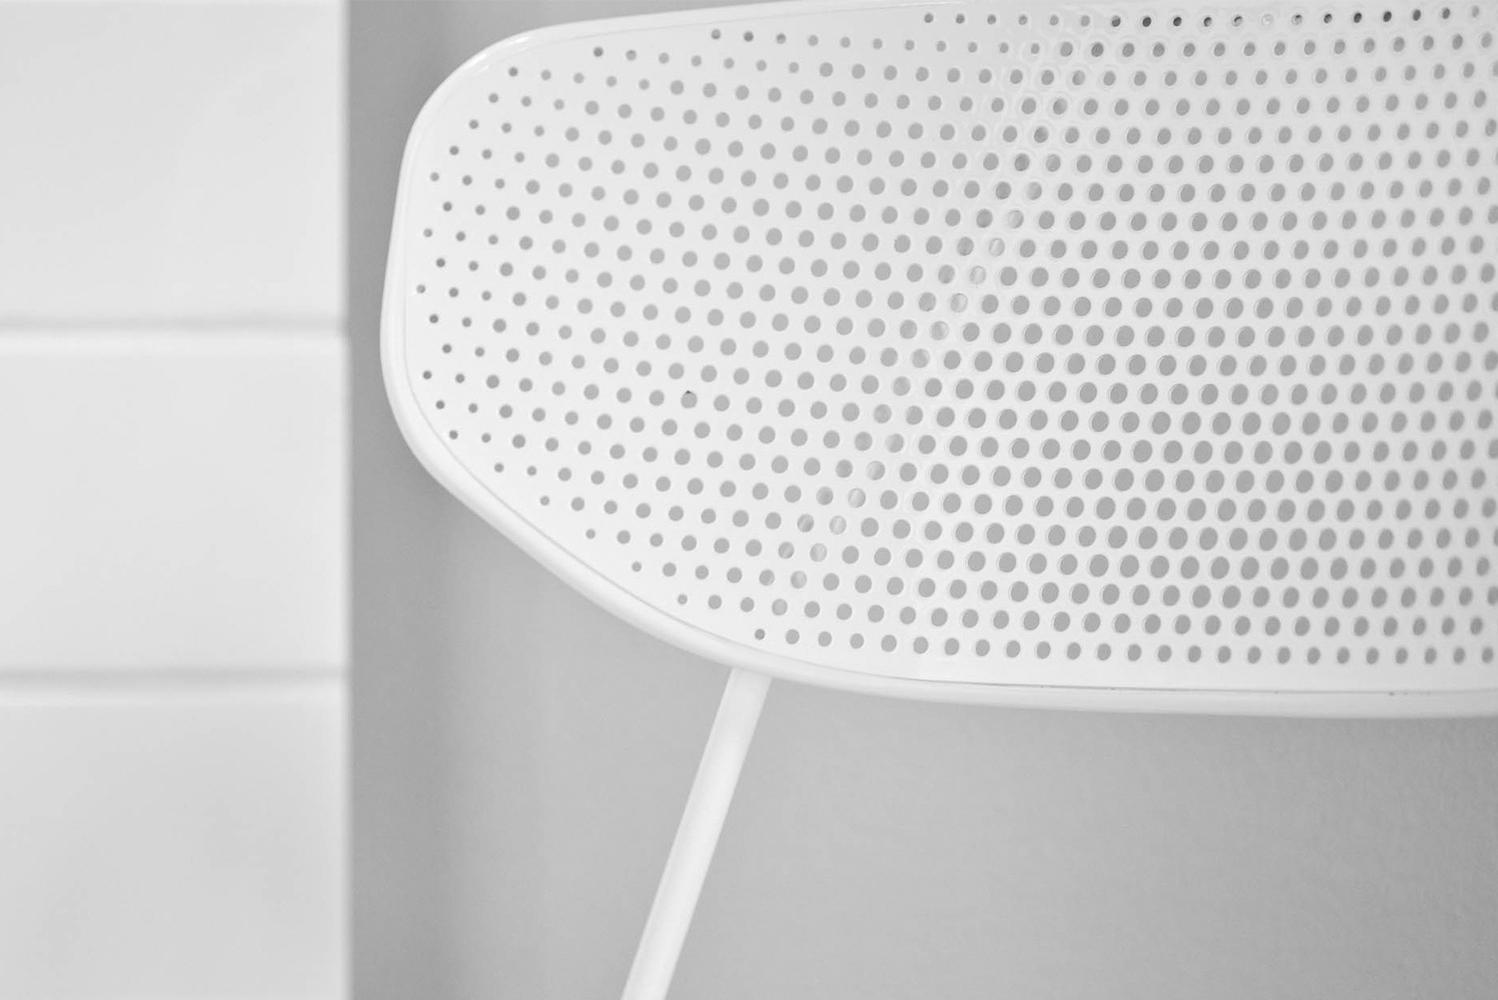 Manufactured with a powder-coated frame, the Naked chair has a perforated steel seat and backrest.